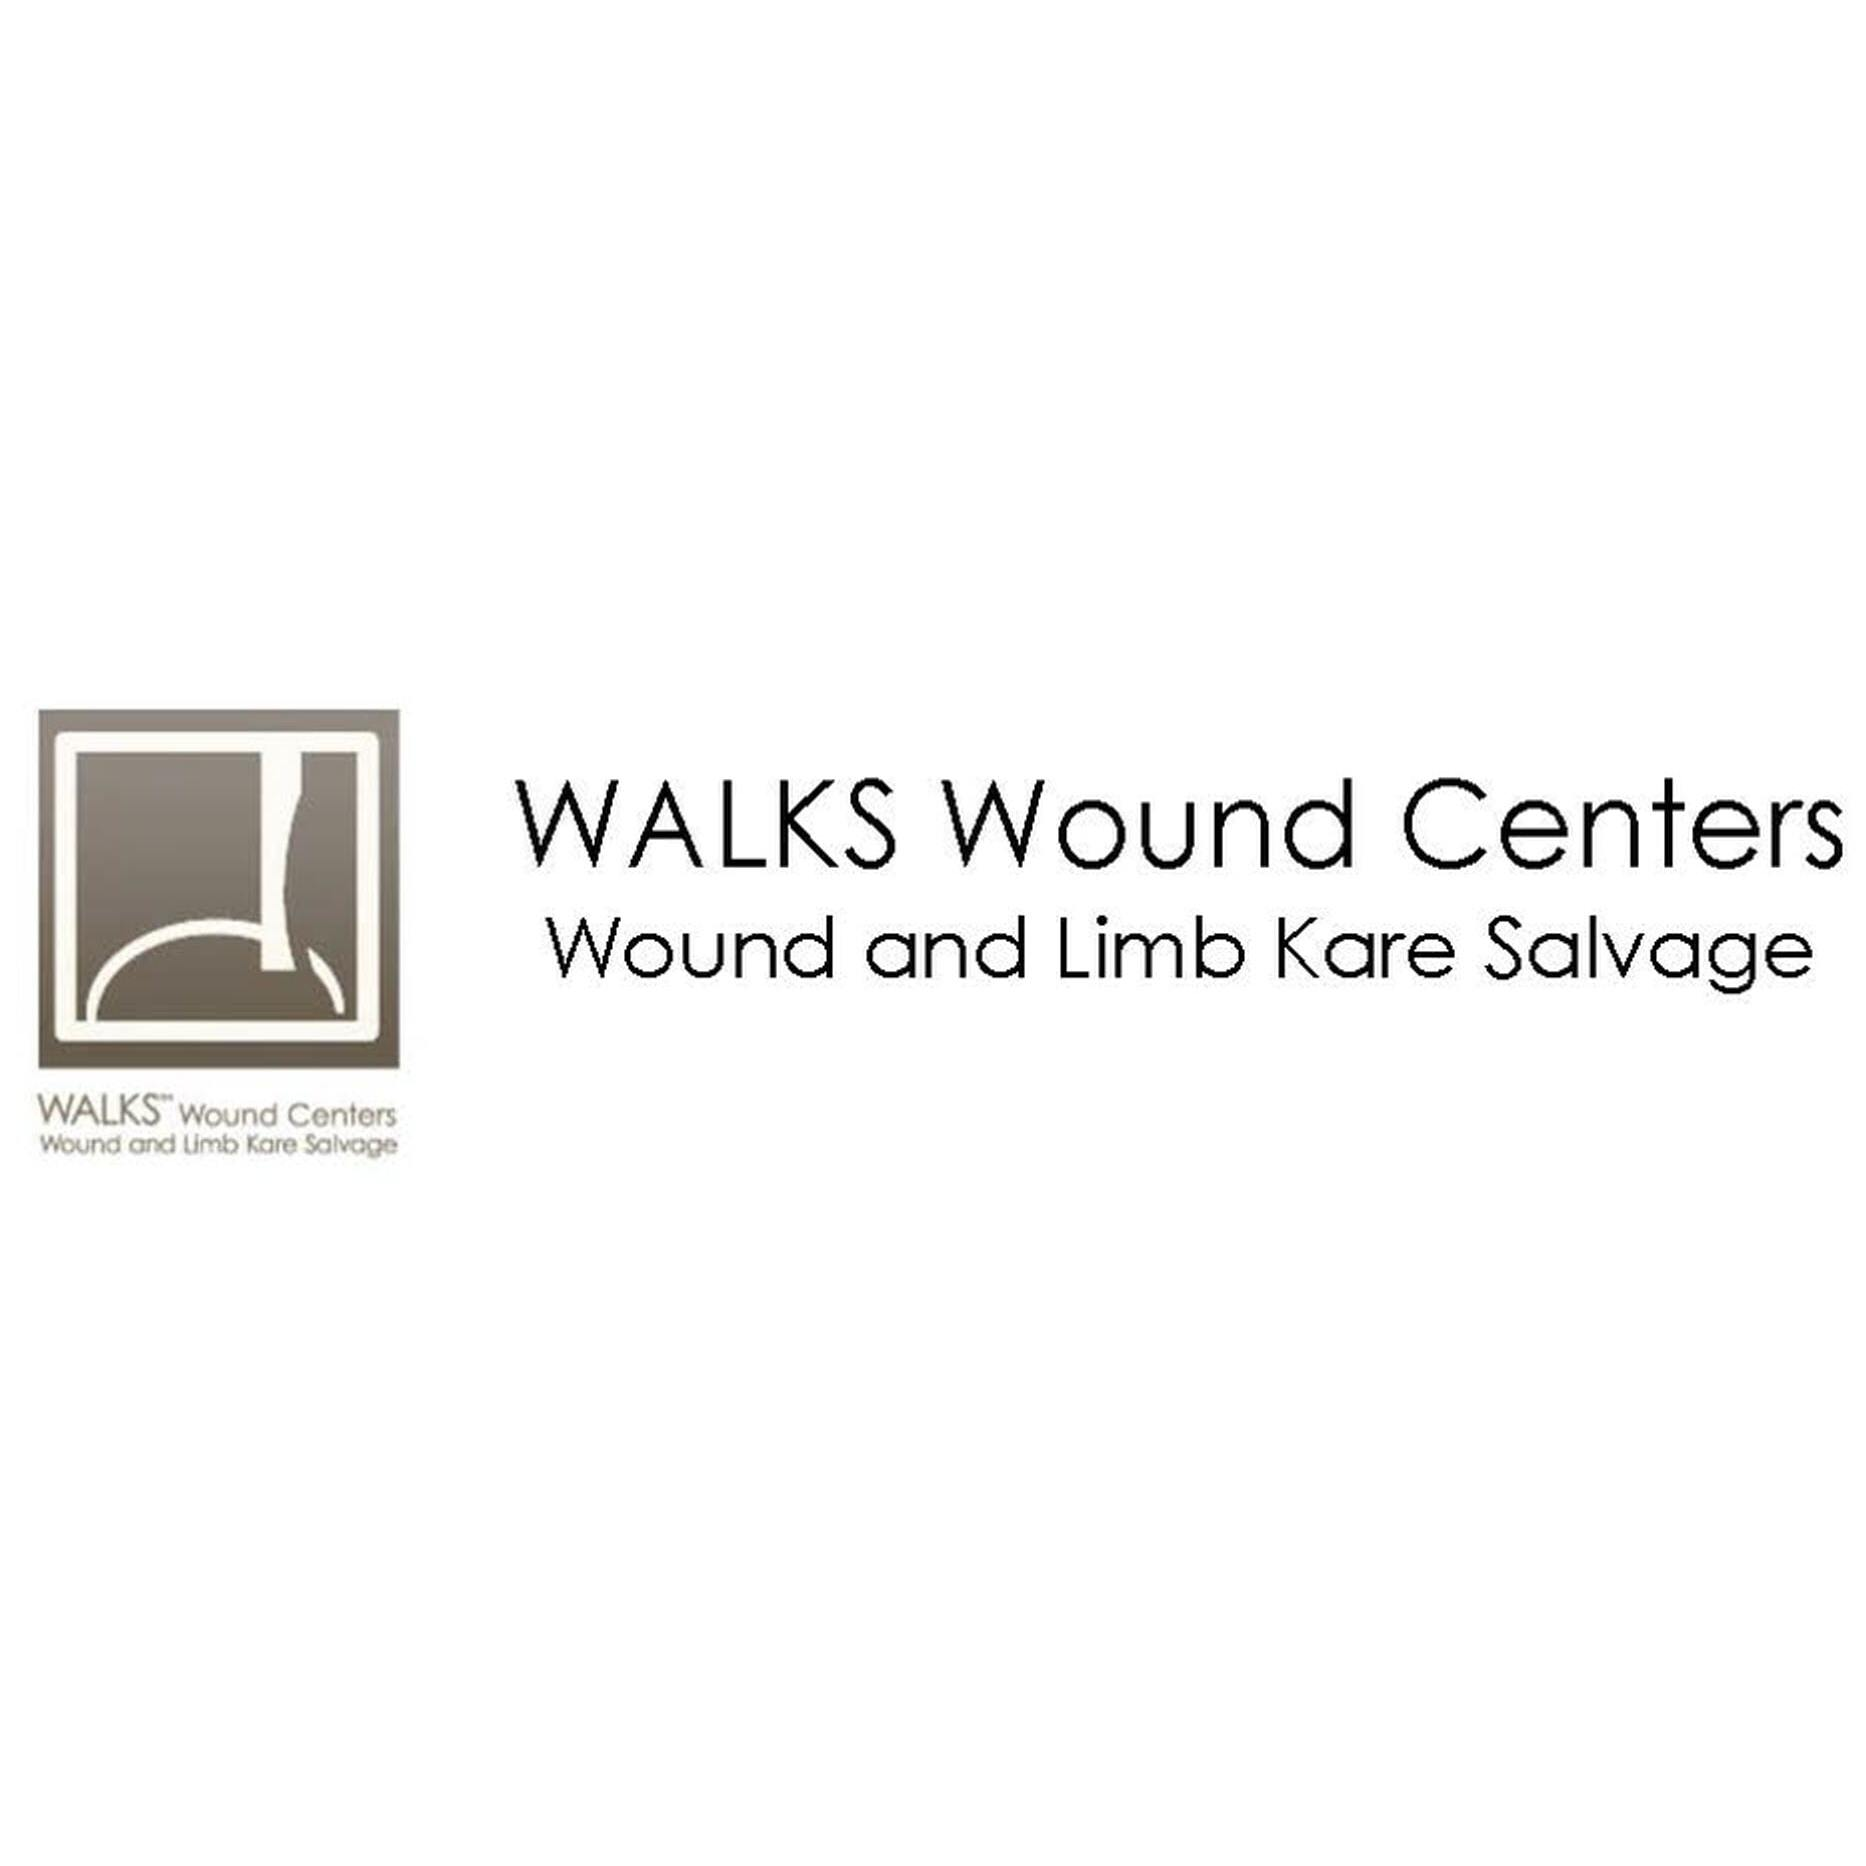 WALKS Wound Centers